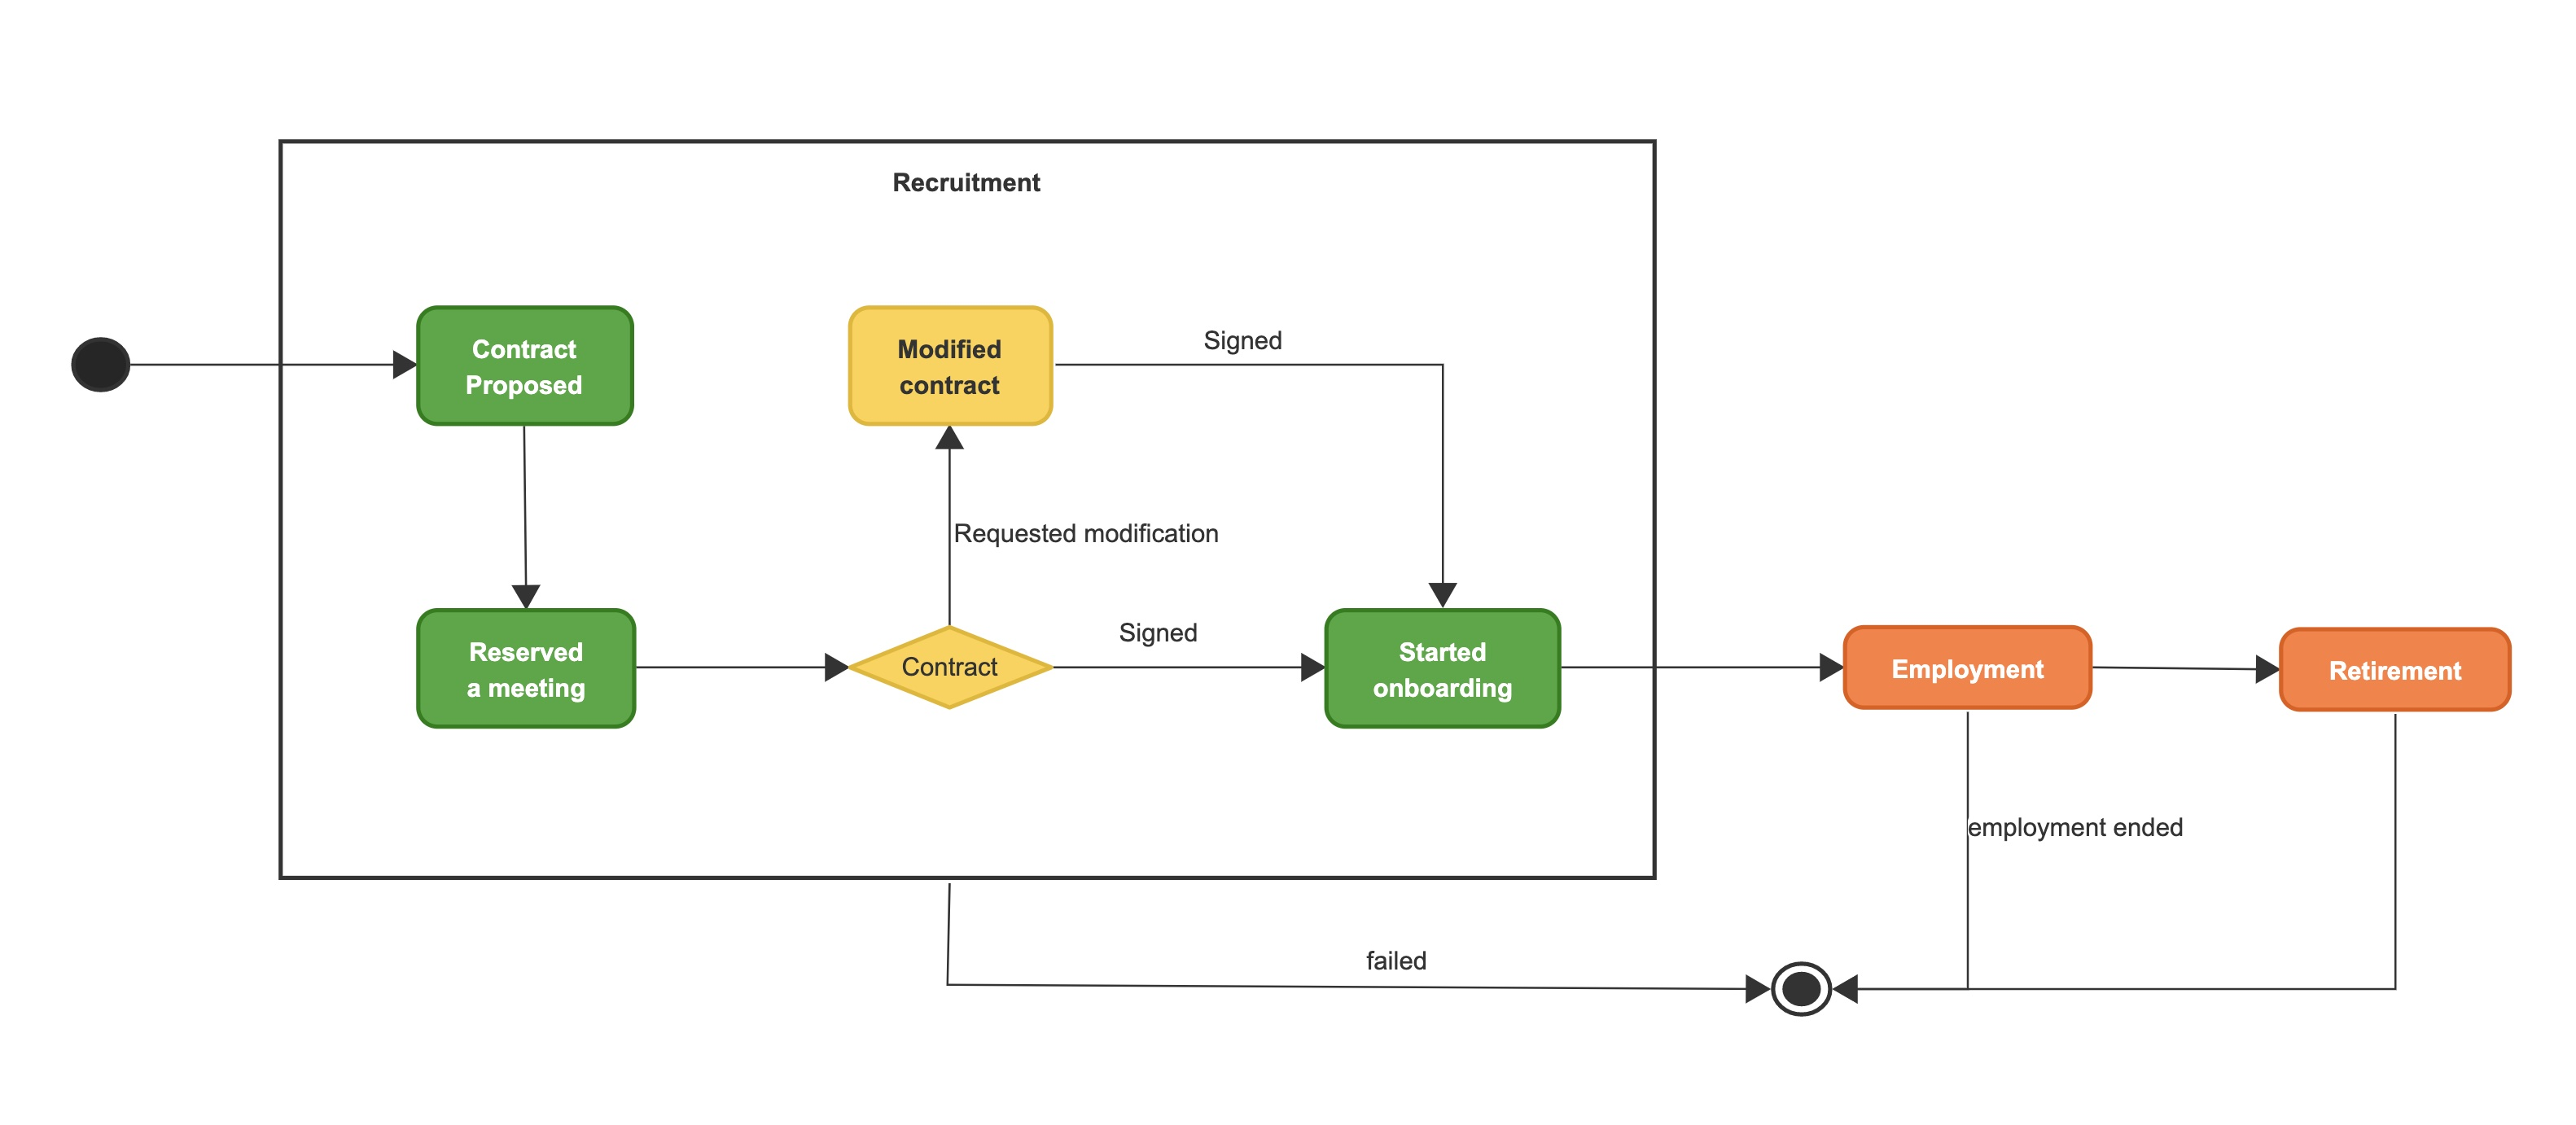 An example of workflow flowchart of a recruitment process